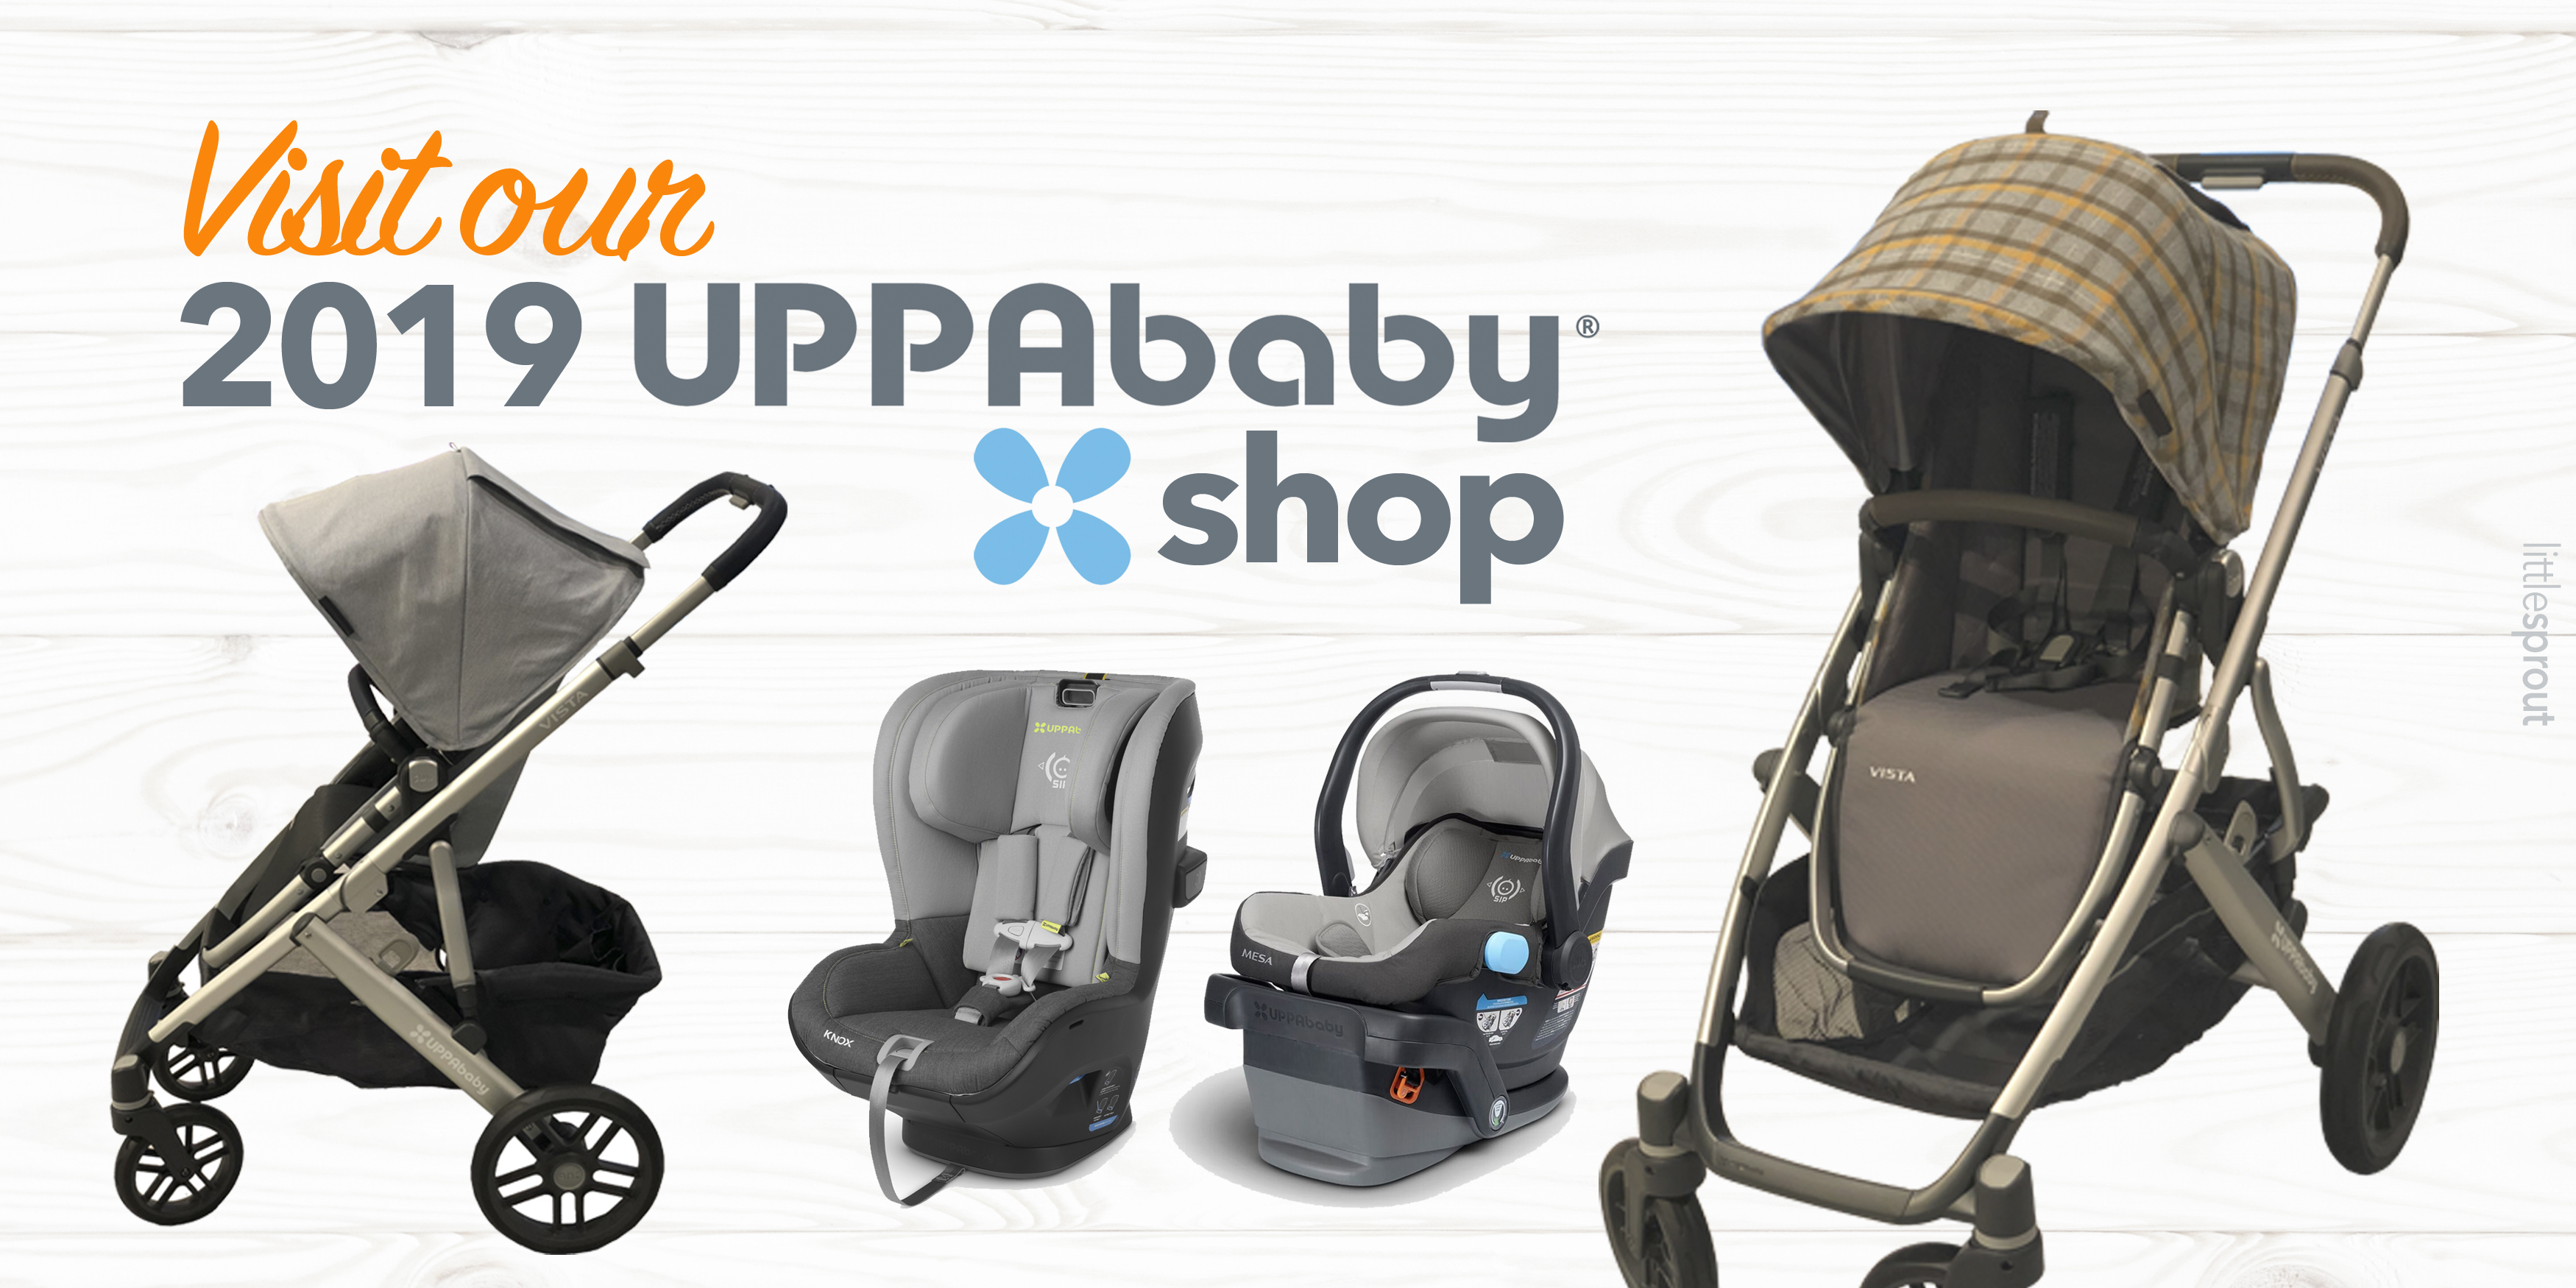 Your Stroller Car Seat And Premium Baby Products Destination